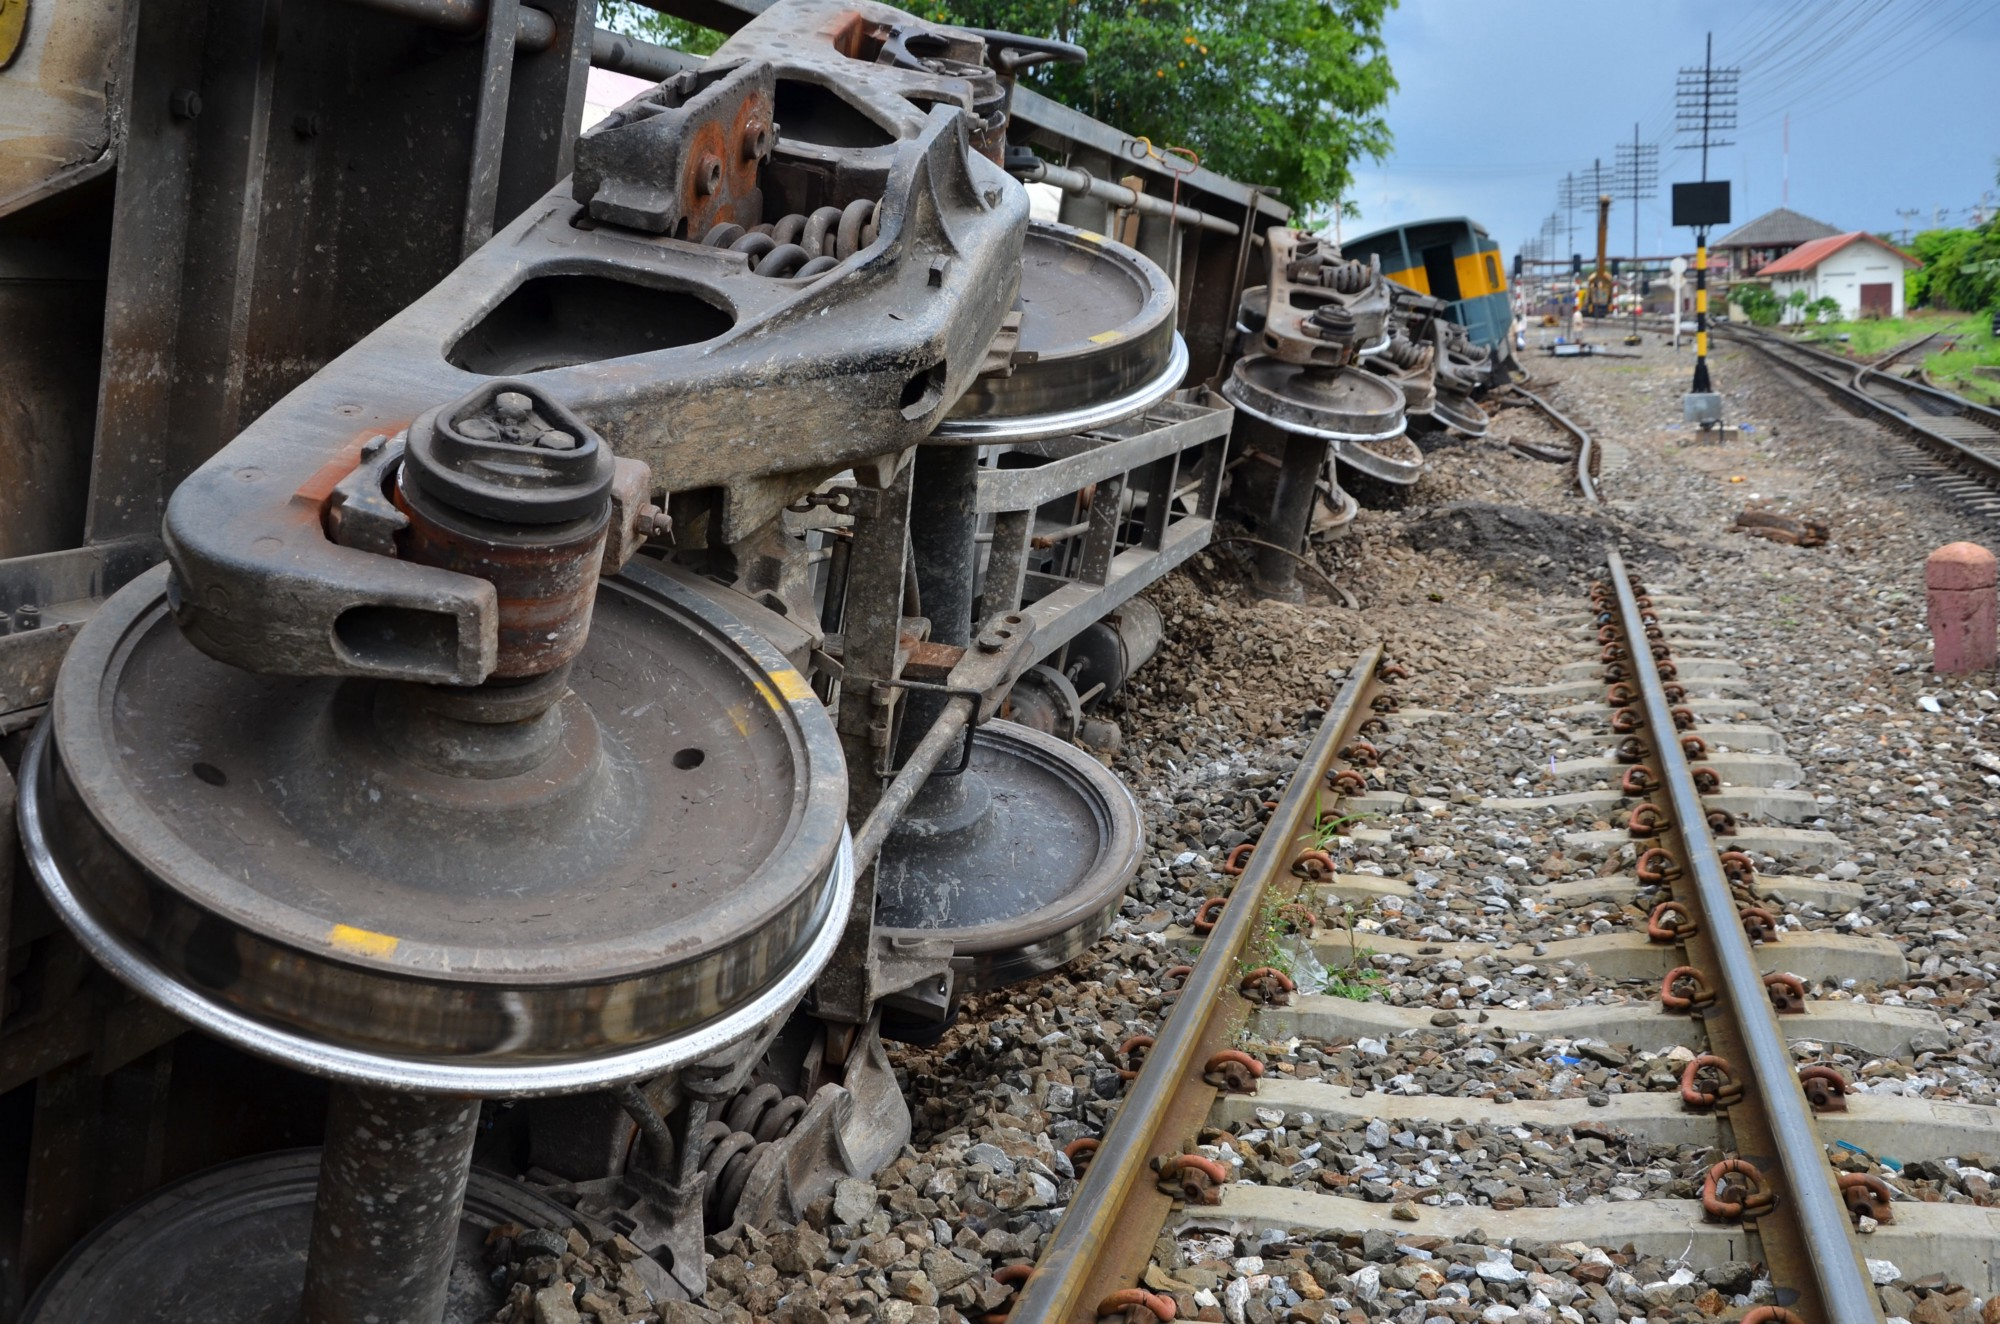 A major train derailment with freight cars lying on their sides beside the damaged railway track